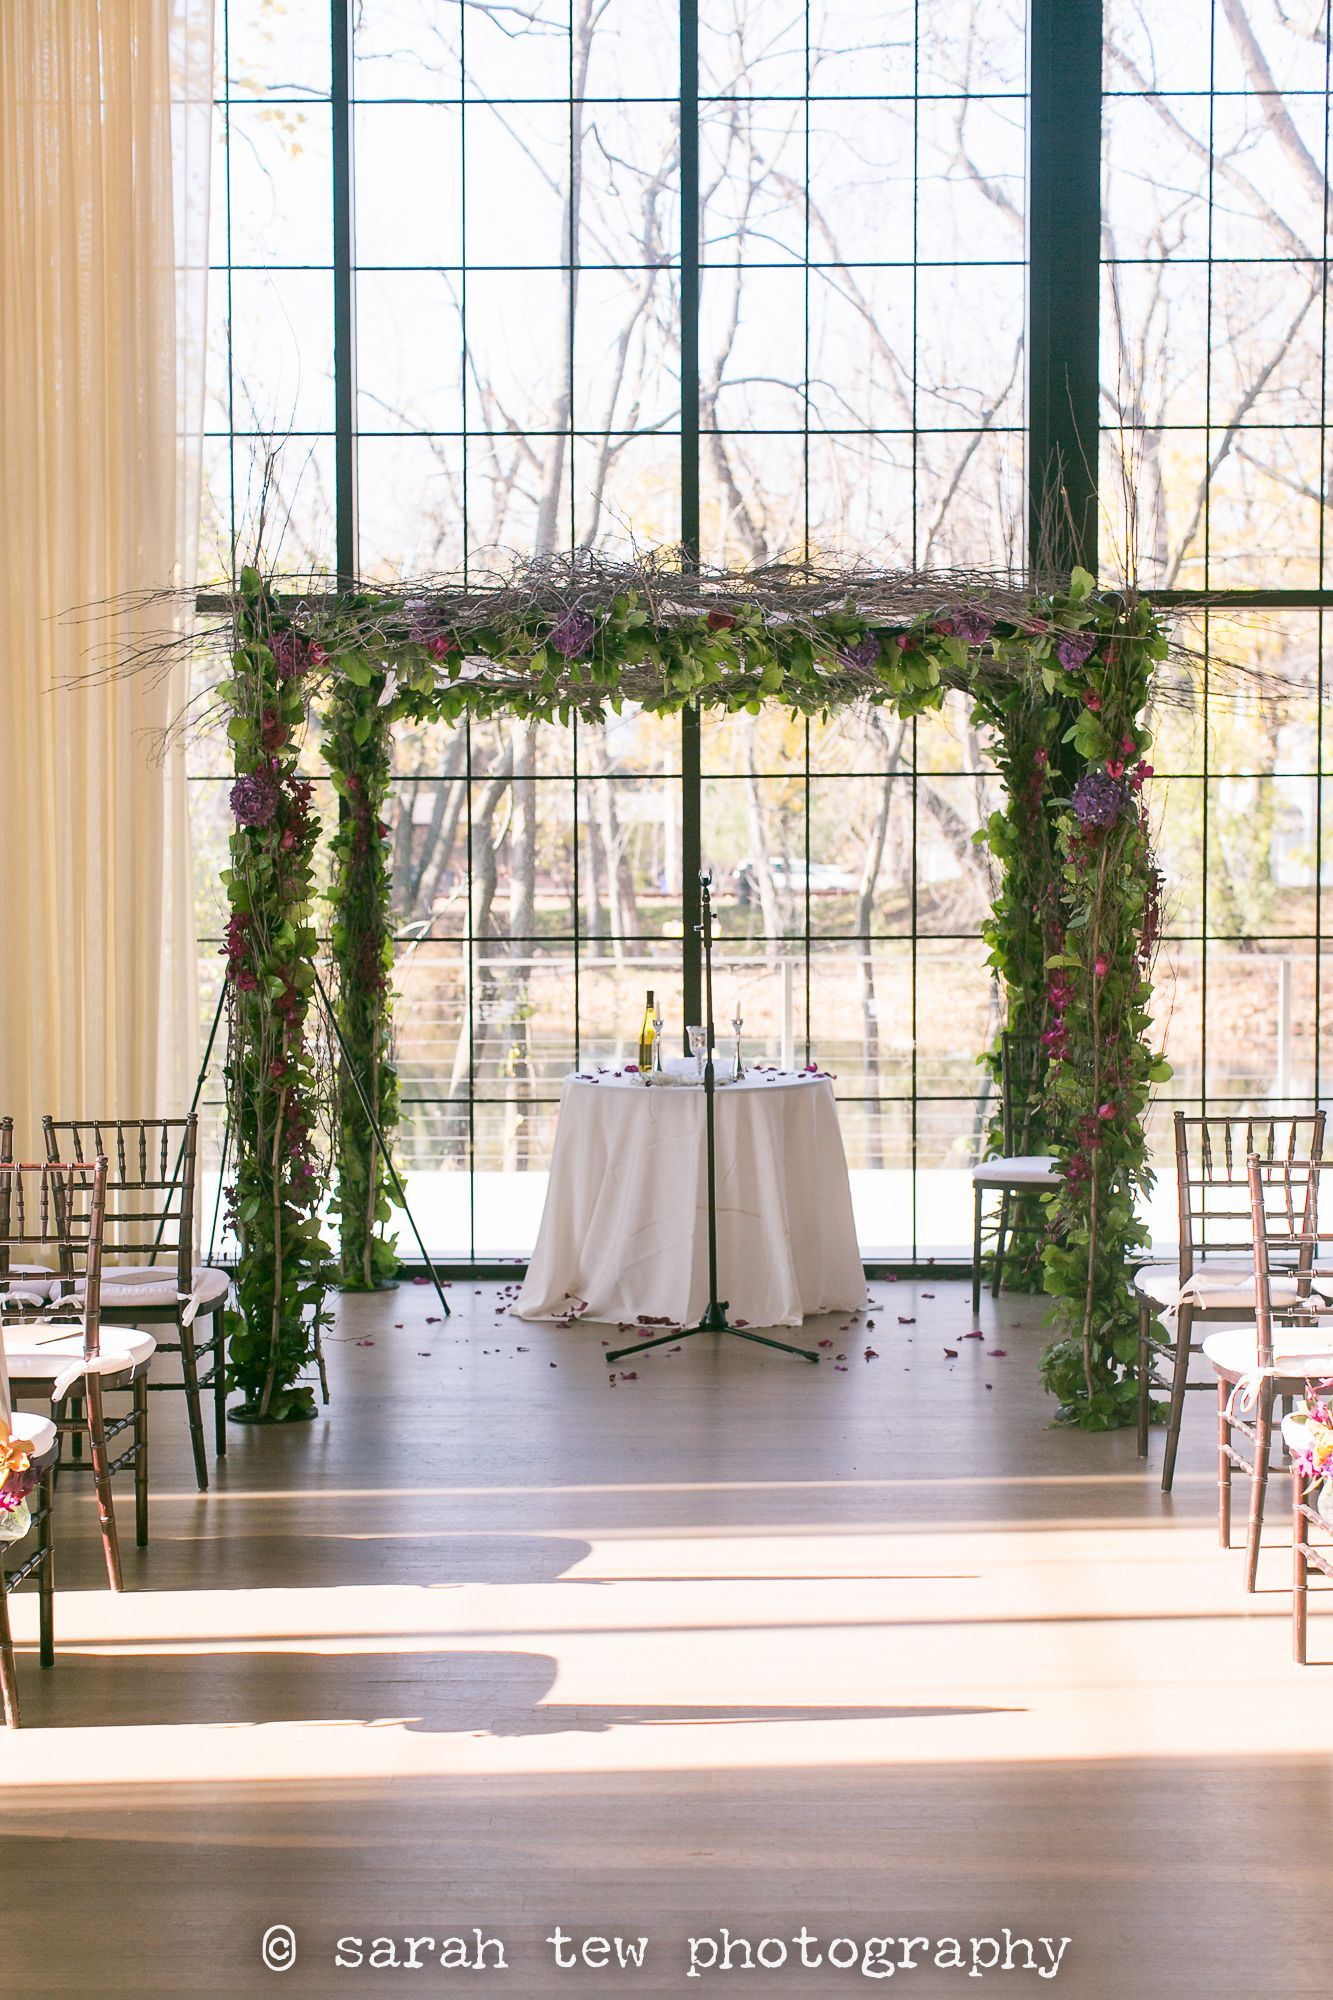 November hudson valley wedding at The Roundhouse at Beacon Falls with purple florals by ©️ Sarah Tew Photography as seen at https://www.sarahtewphotography.com/blog/johanna-gregs-wedding-the-roundhouse-at-beacon-falls/ featuring @TaraKeely @StevenBruceDesigns @NYEngagements